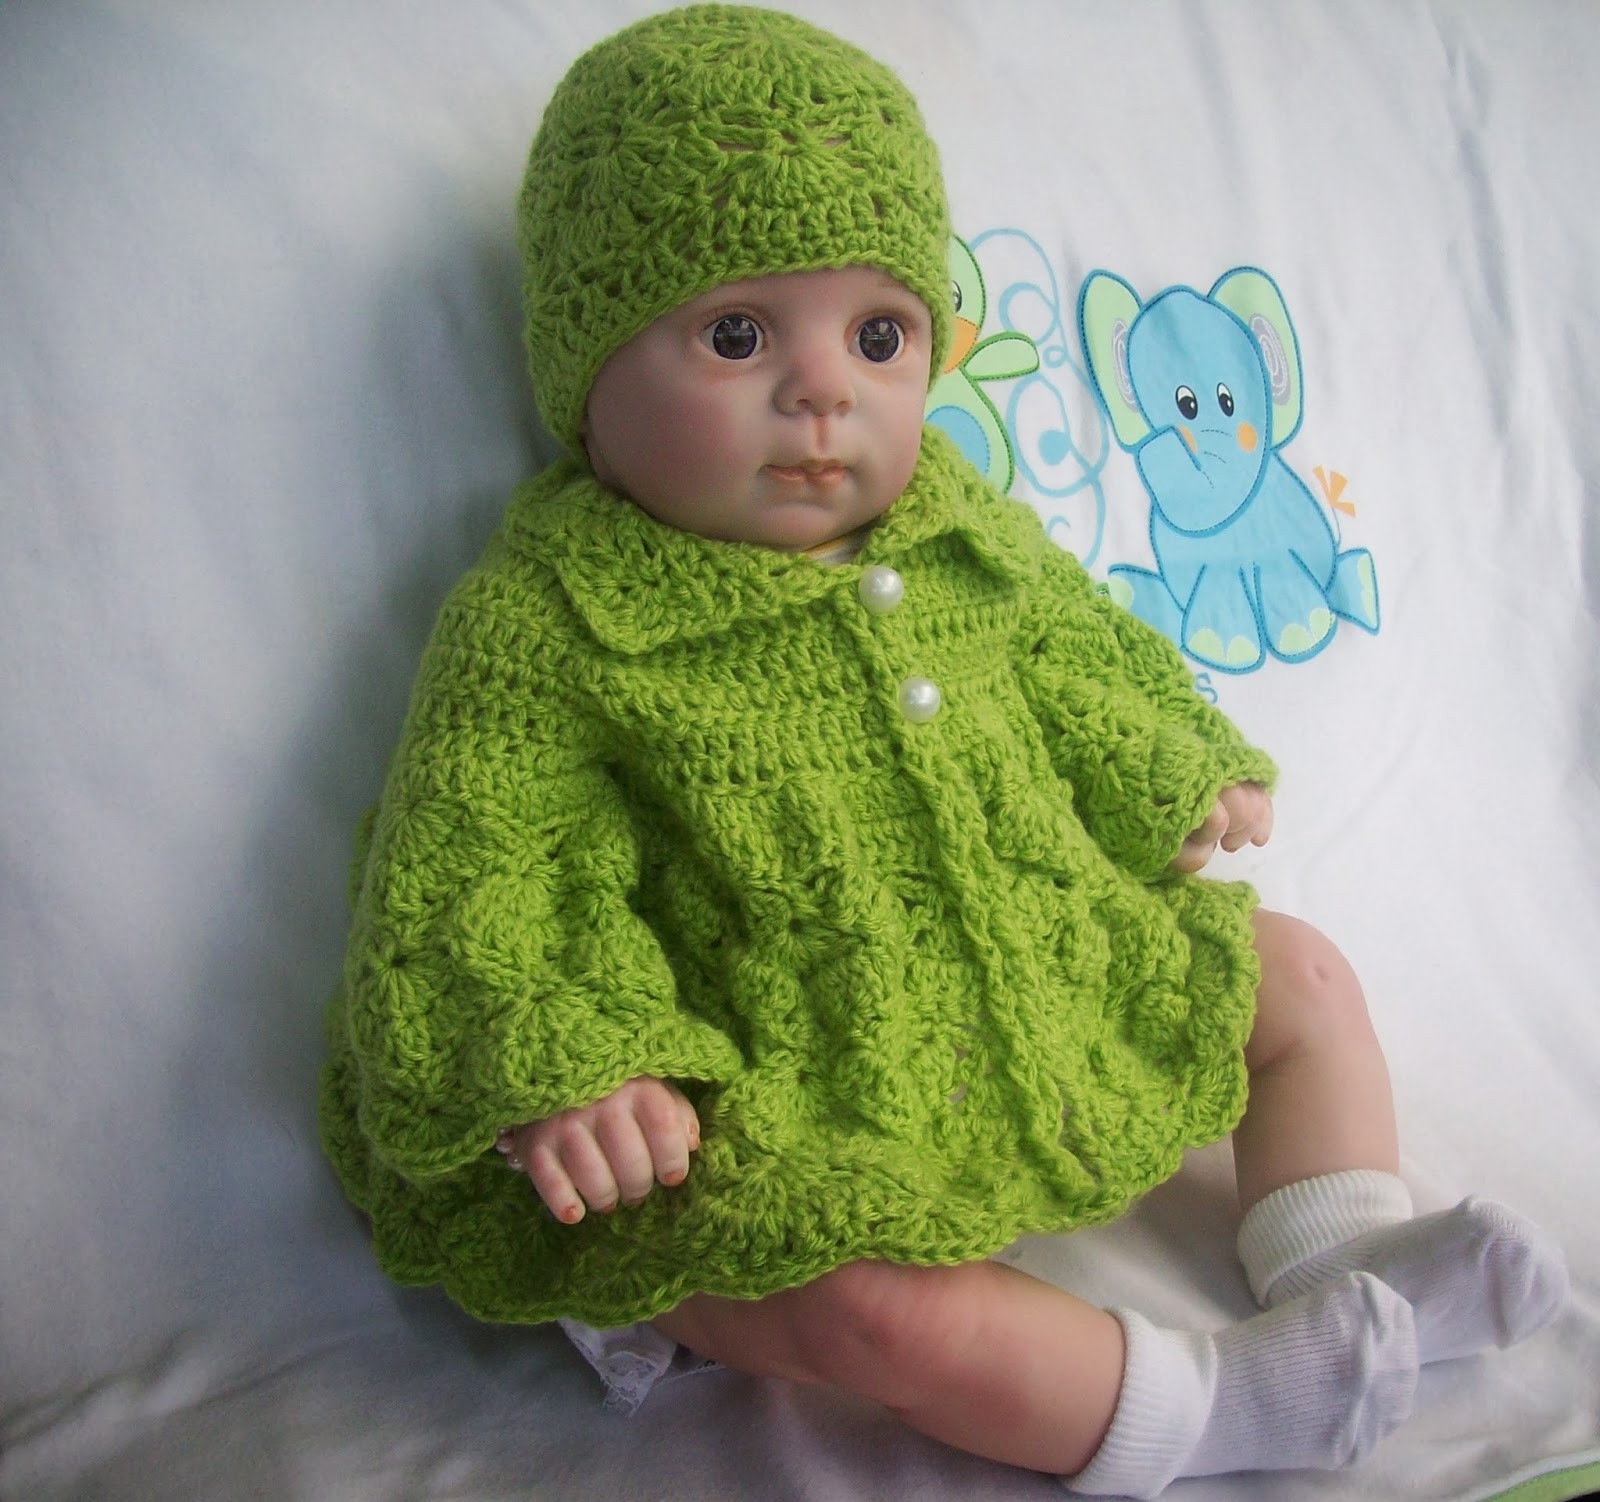 Awesome Free Crochet Patterns by Cats Rockin Crochet Free Crochet toddler Sweater Patterns Of Charming 50 Models Free Crochet toddler Sweater Patterns